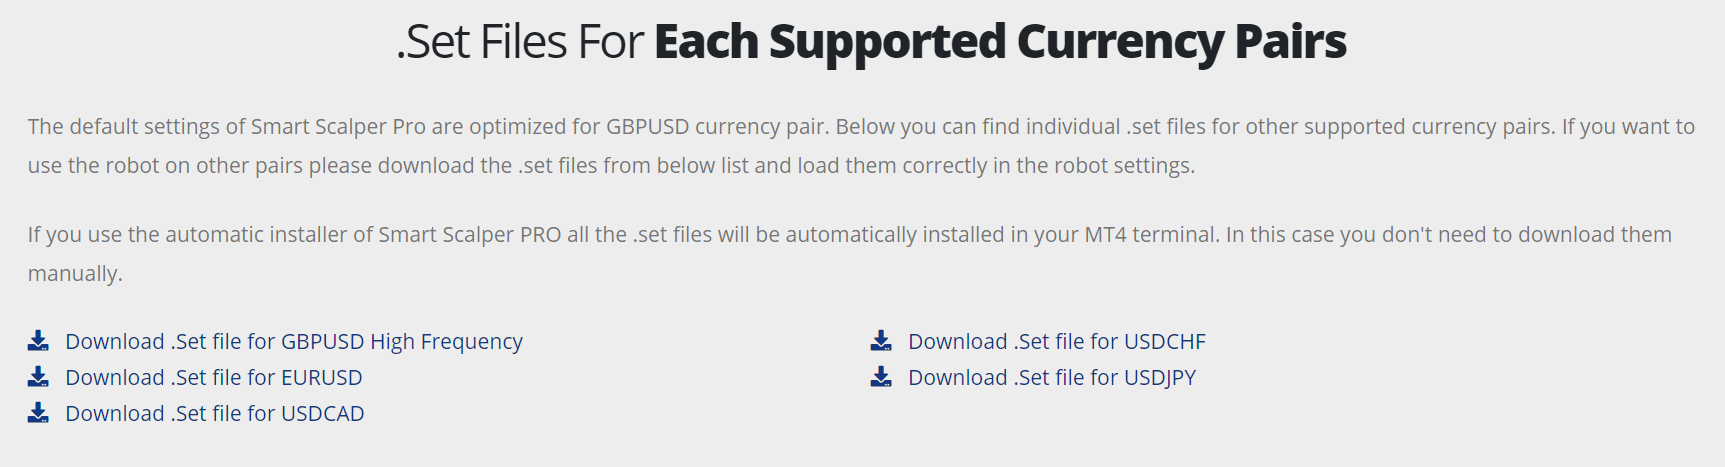 Smart Scalper Pro. We have a list of settings files for each symbol the robot works with.